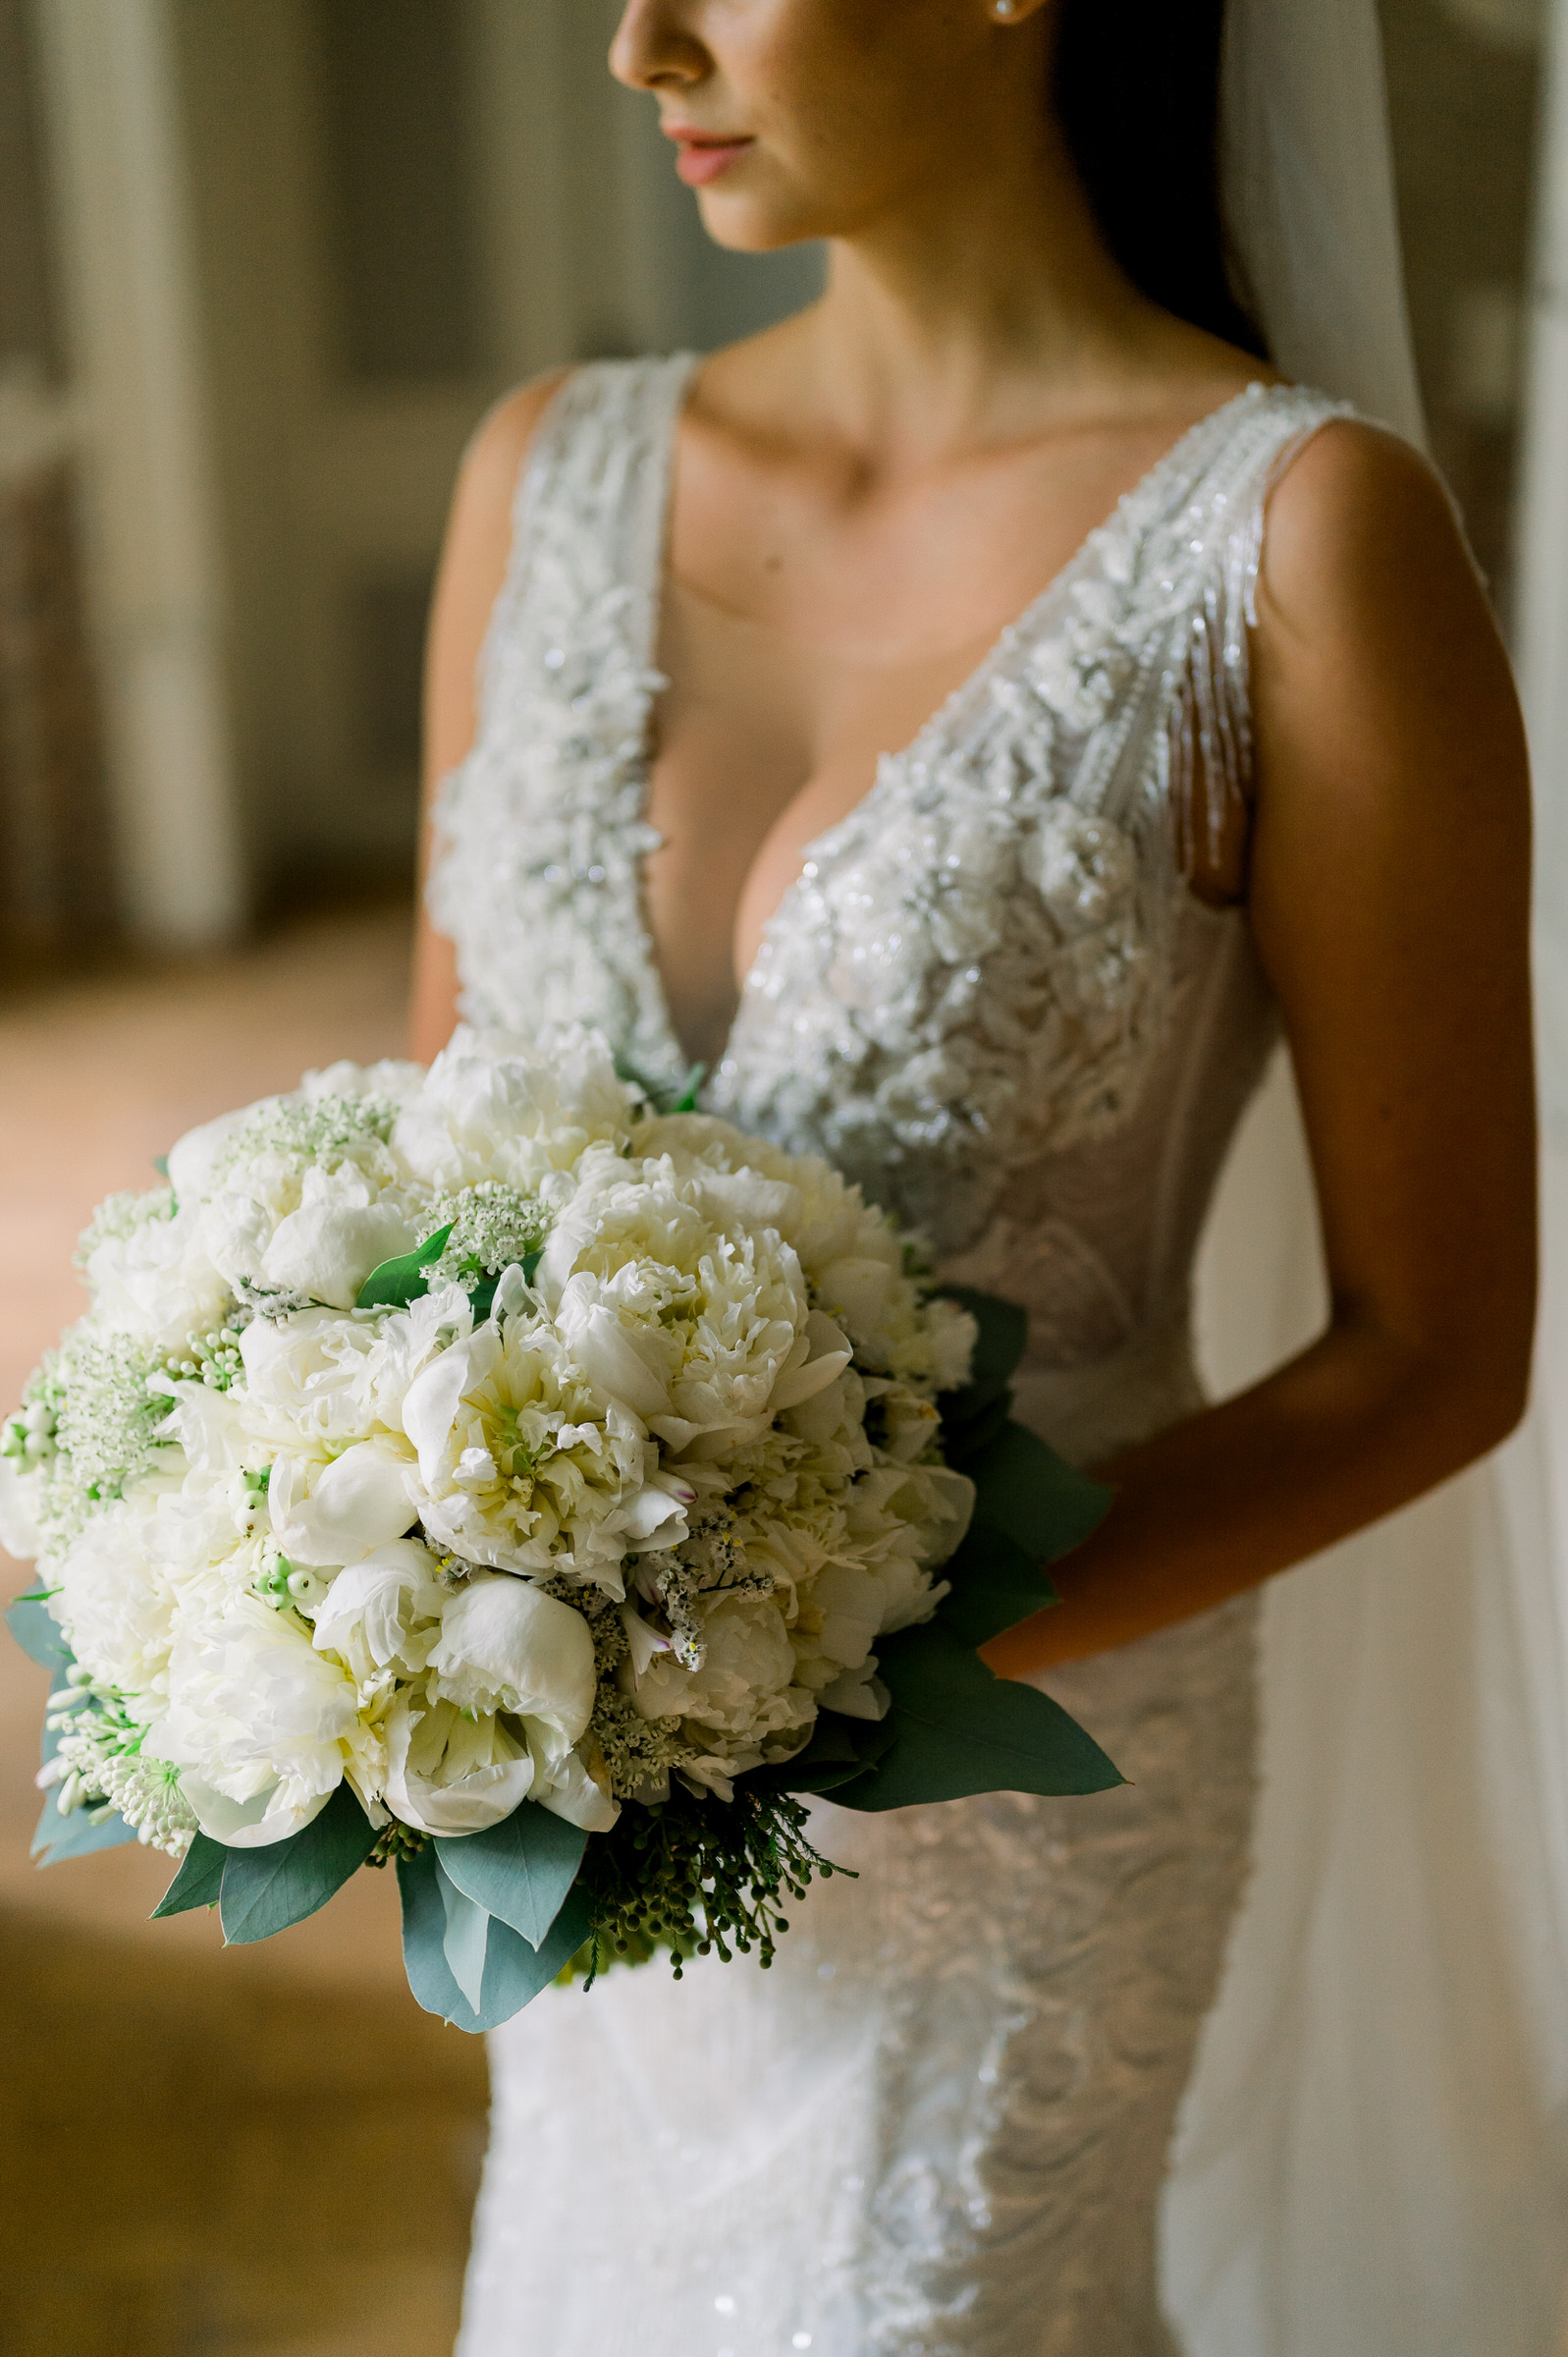 Glamorous bride in beaded gown - photo by M&J Studios